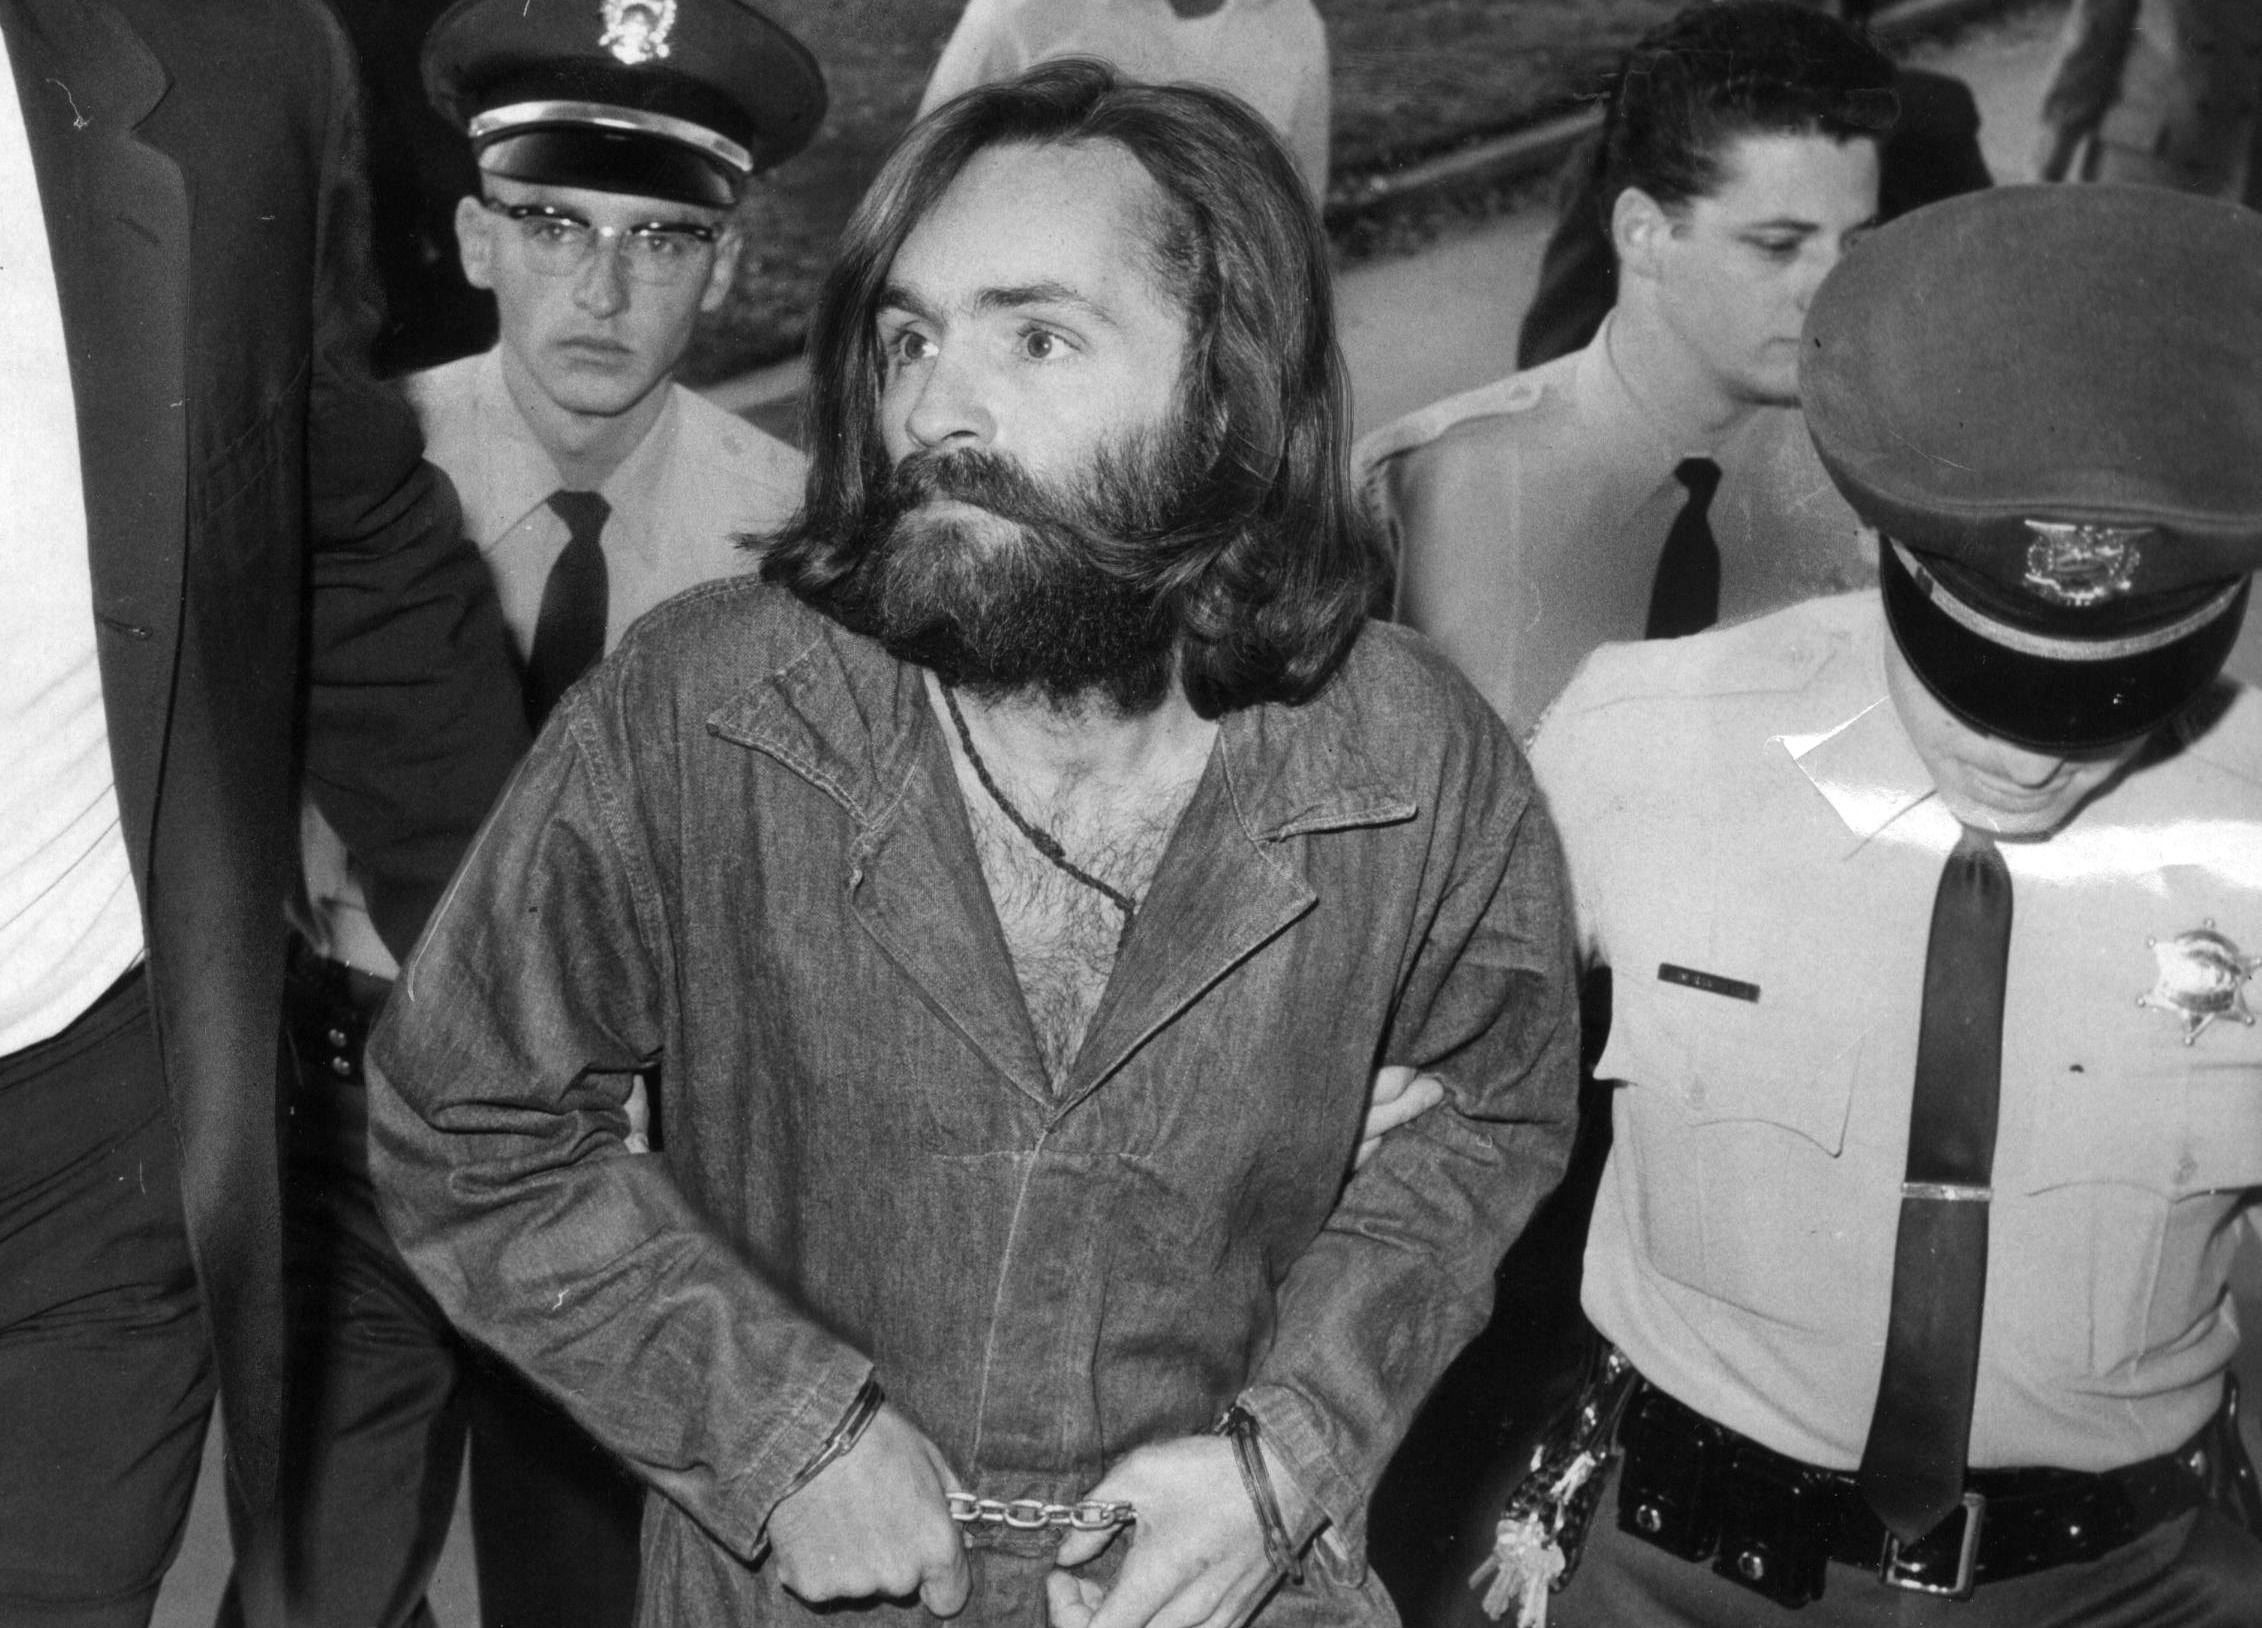 Here's What Happened to Charles Manson After His Infamous Murder Spree